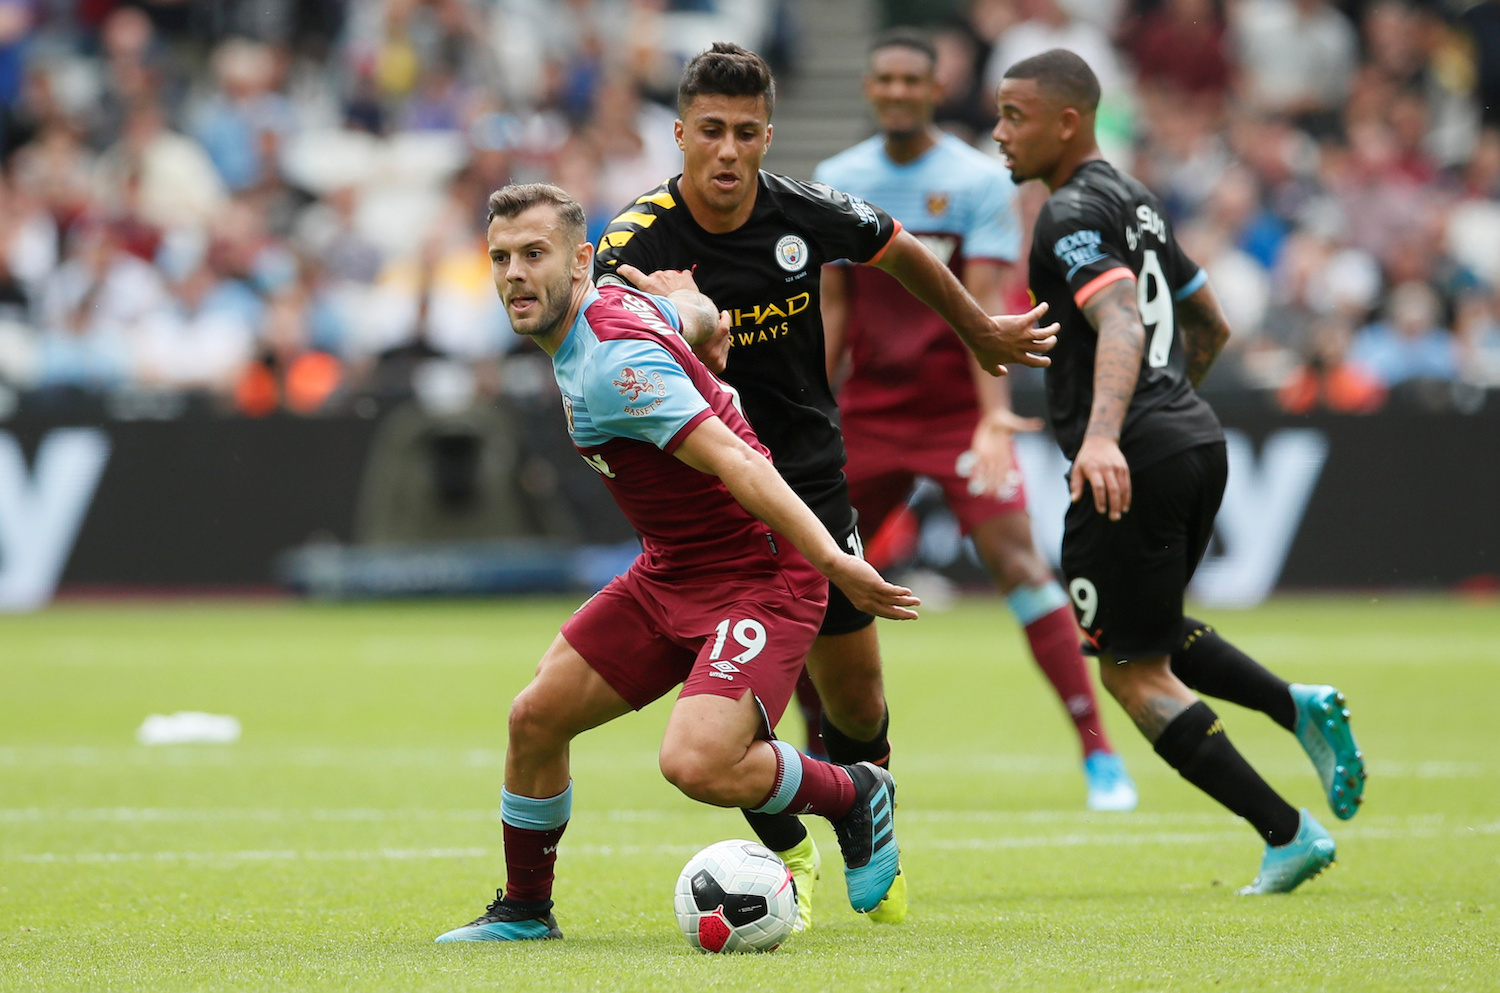 Manchester City opens Premier League title defense by bossing West Ham